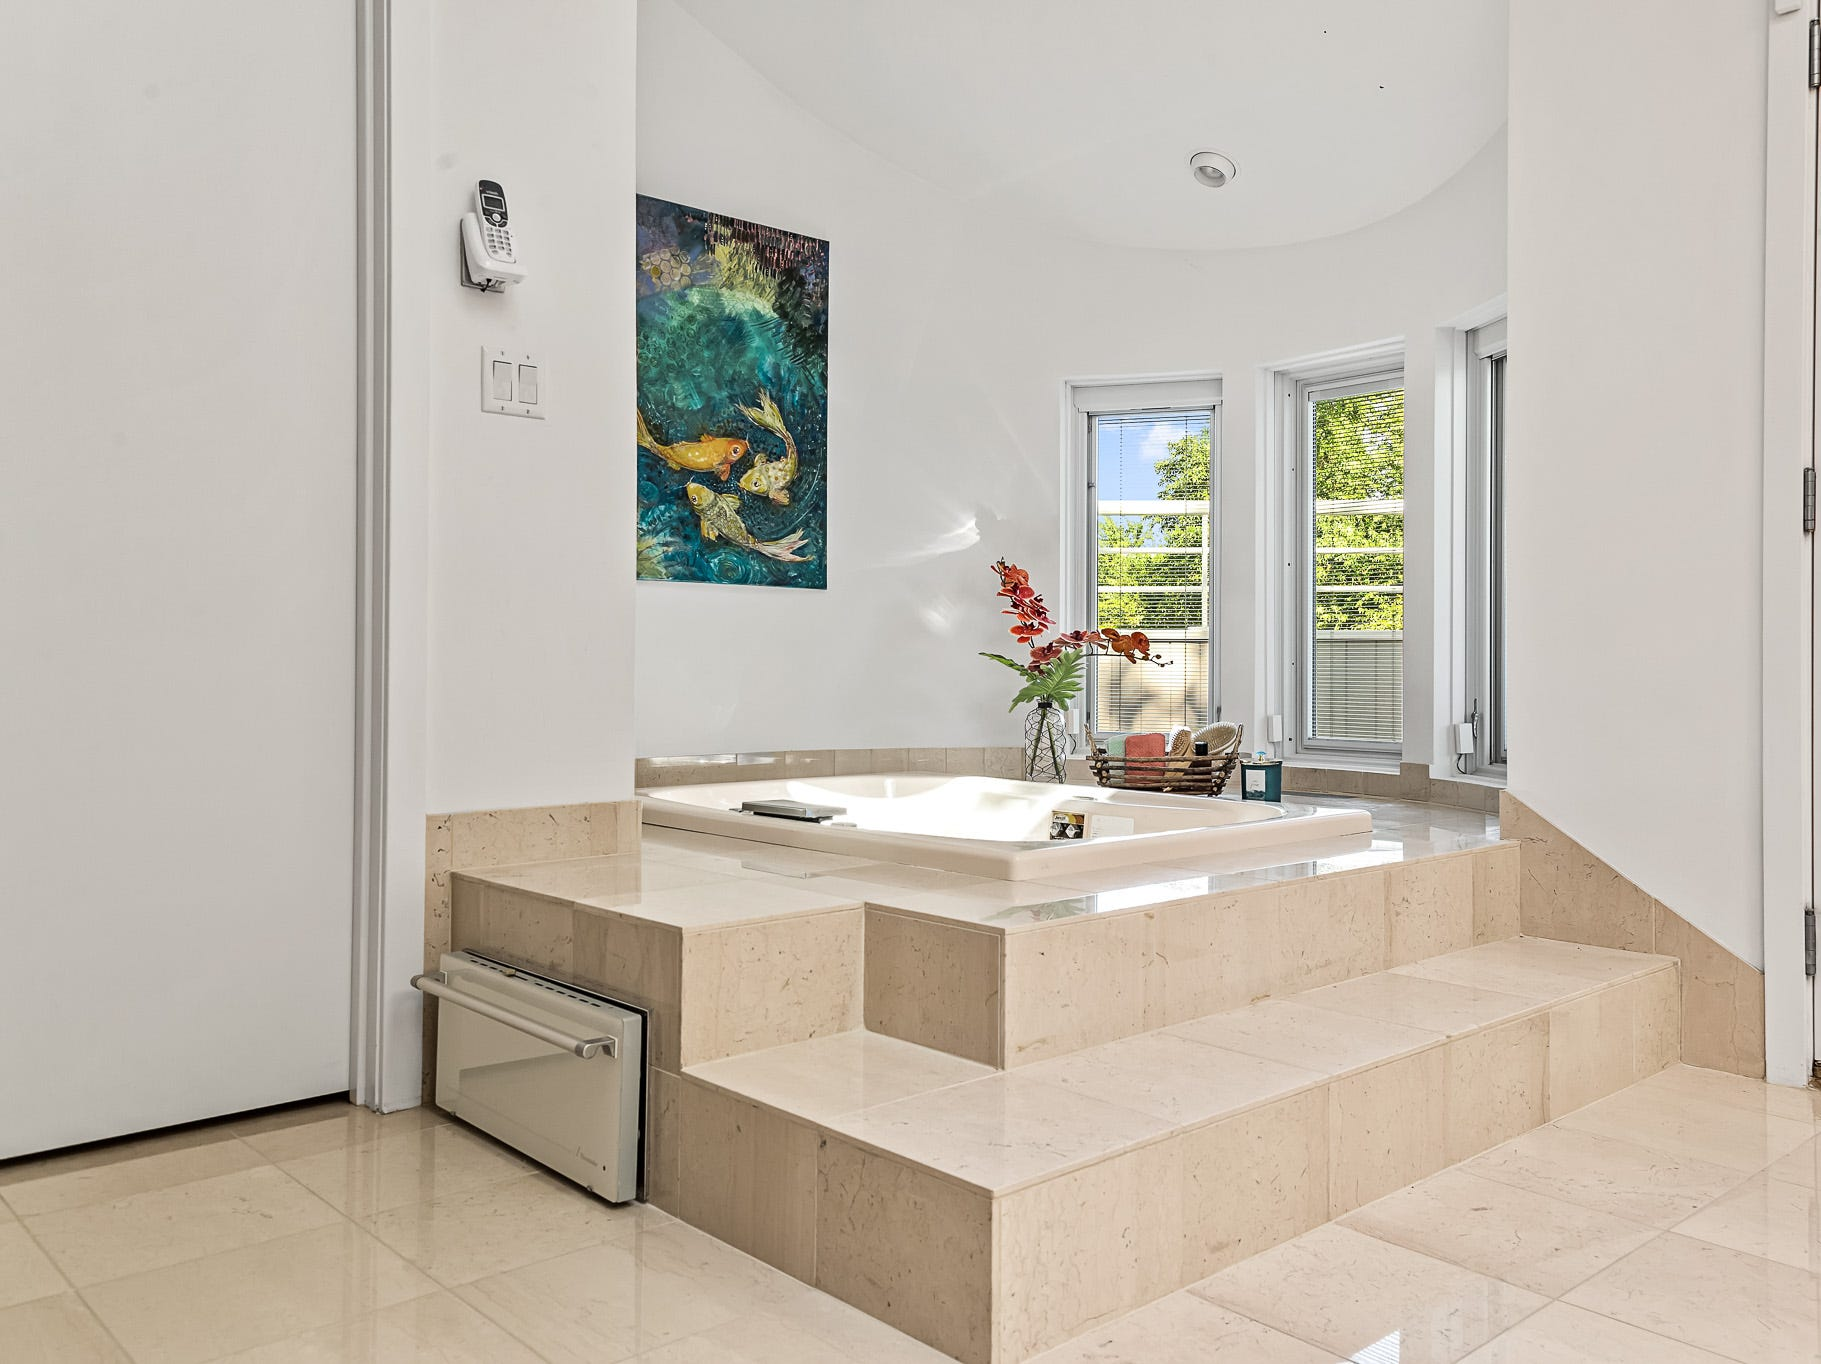 The master bath at 3611 Centerville Road in Greenville includes an elevated jetted tub.